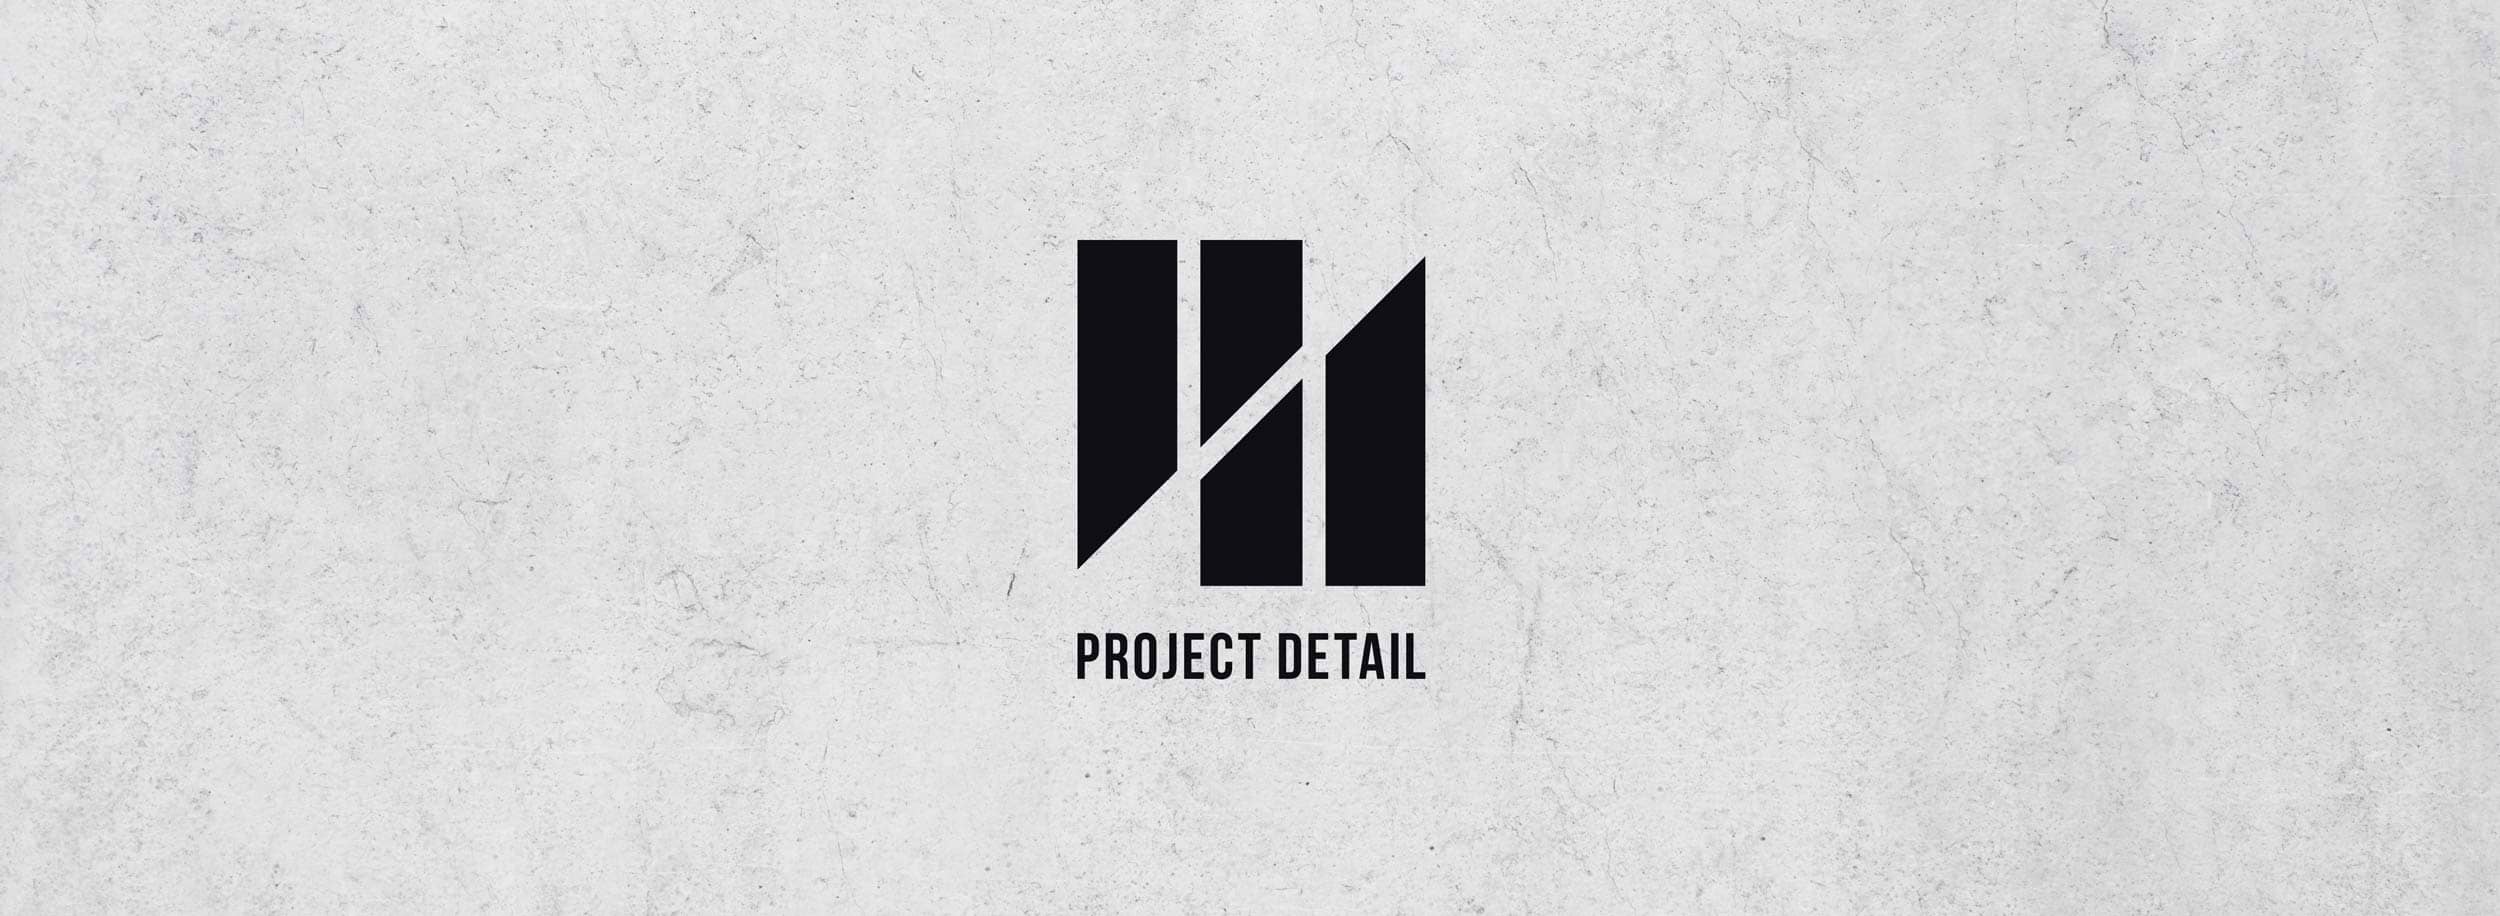 Very clean and energetic logo for Project Detail. © LET'S PANDA